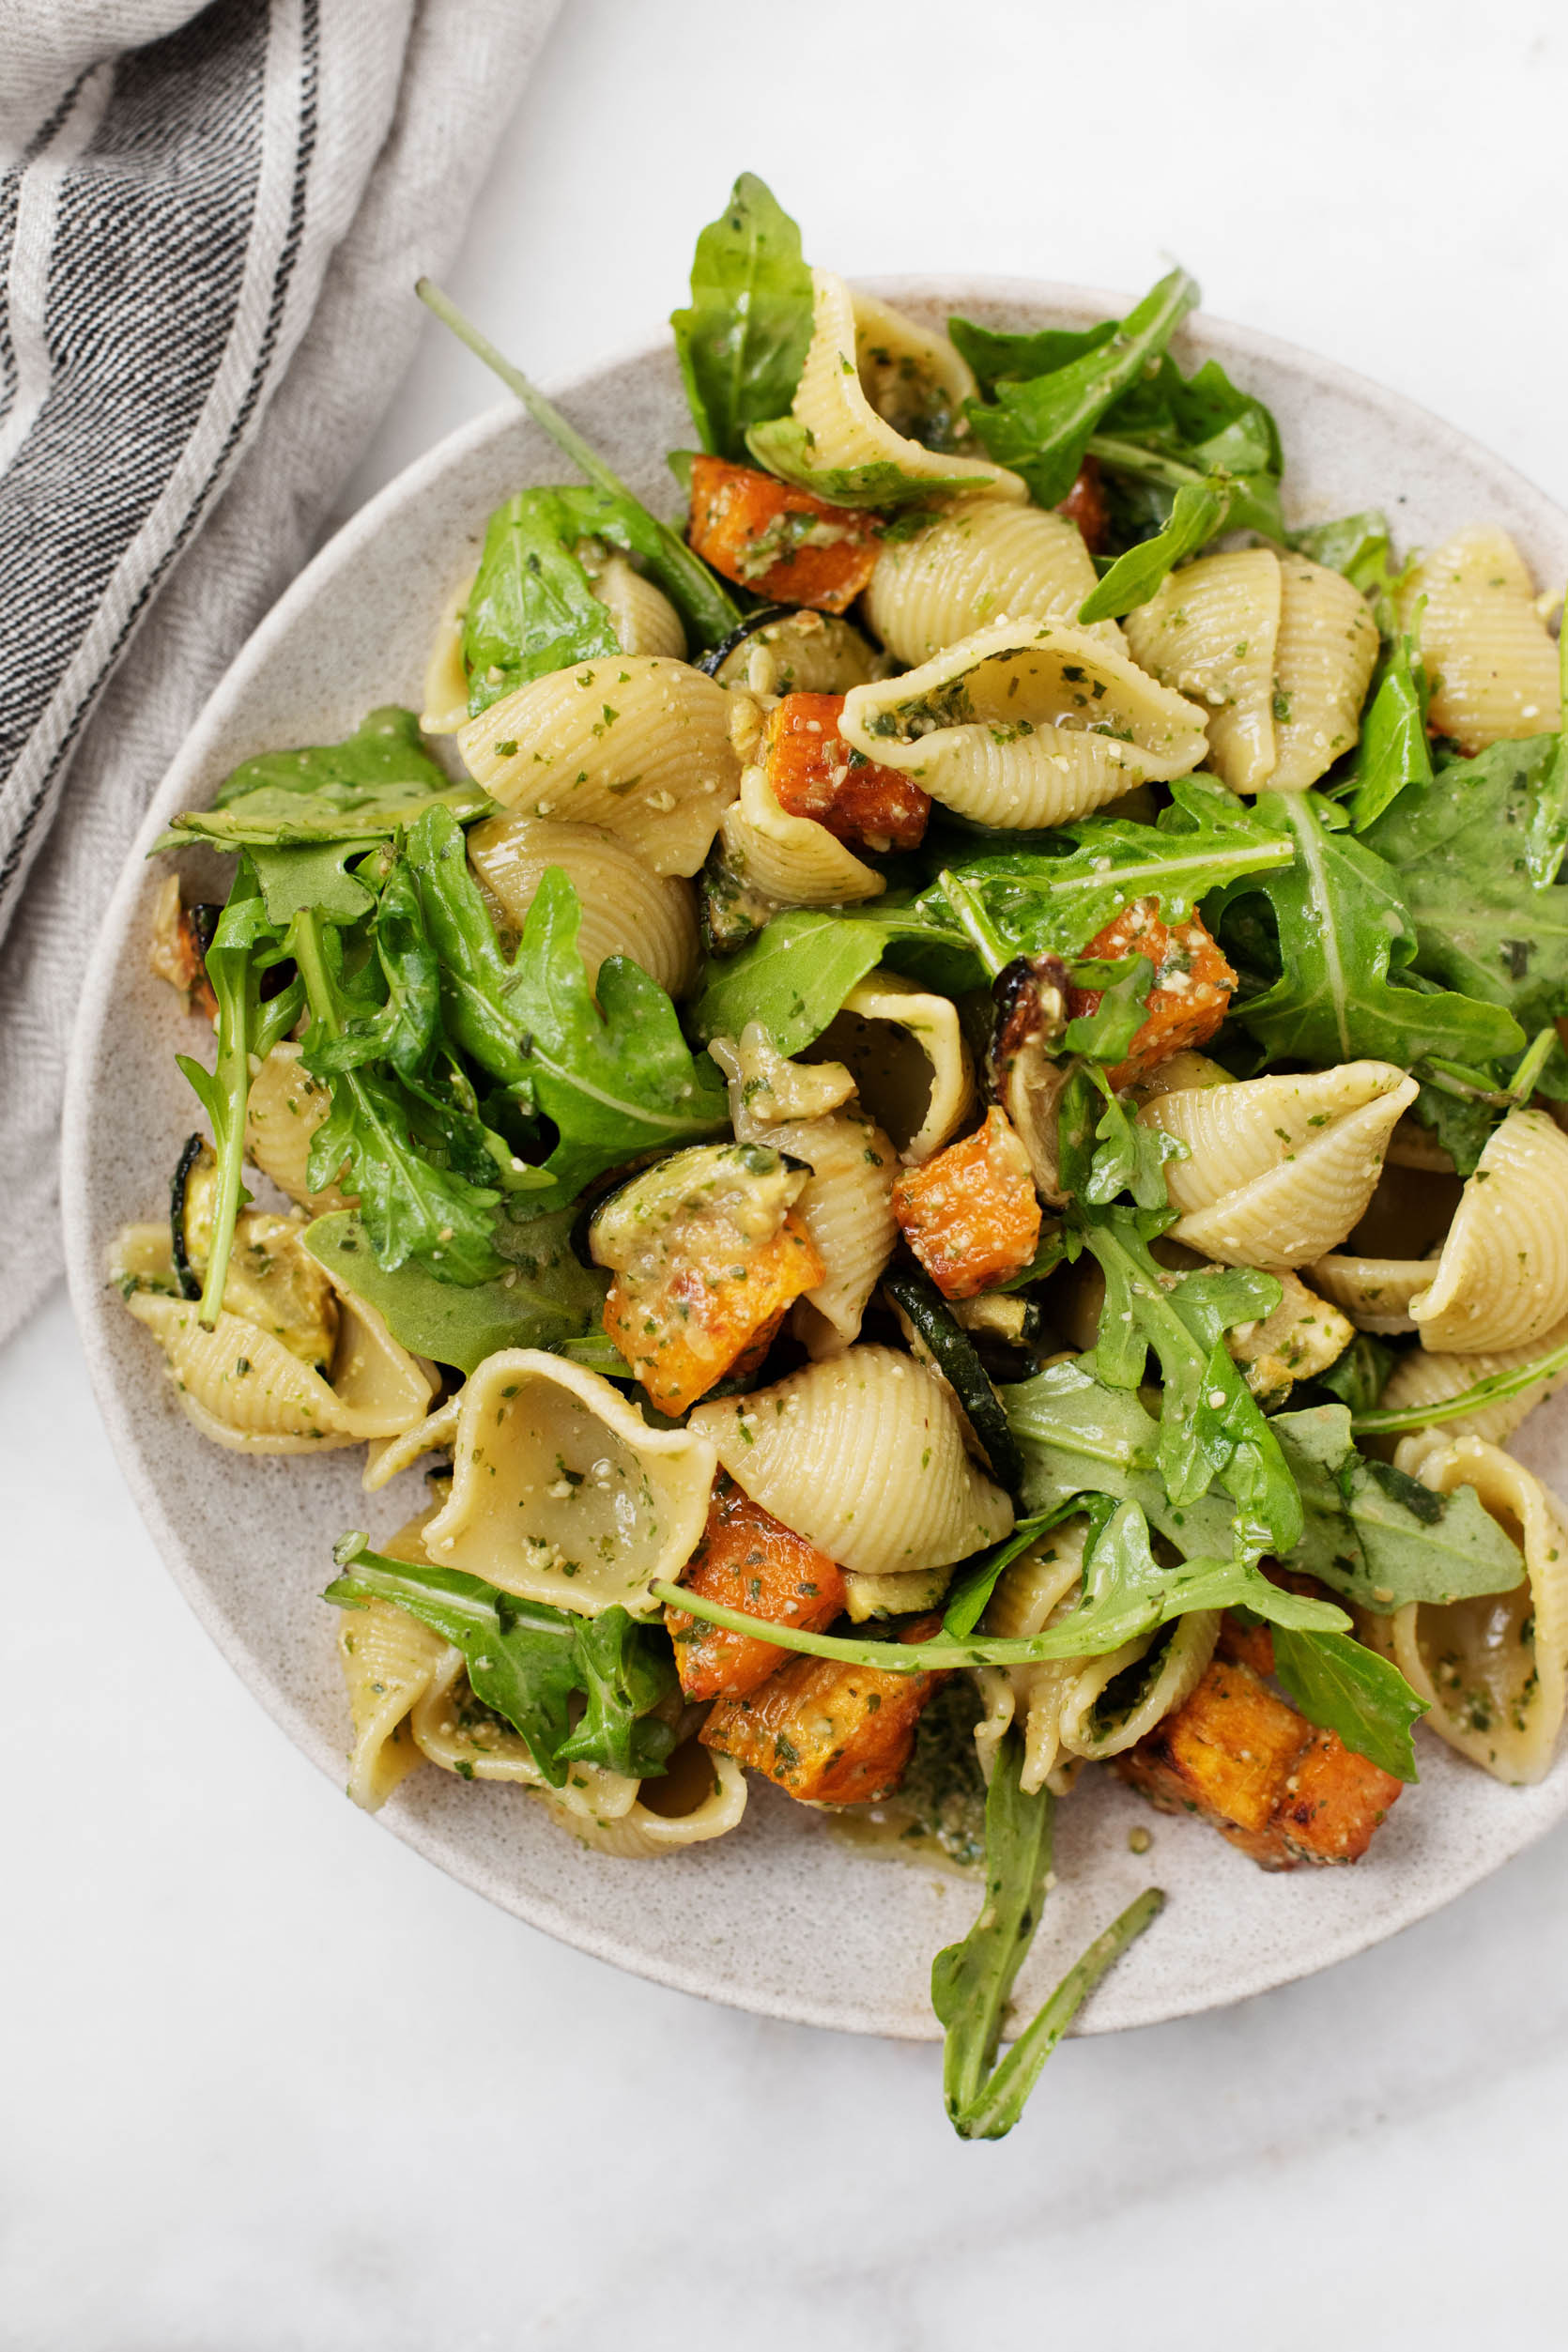 Pasta shells are dressed with freshly made pesto and tossed together with arugula, roasted butternut squash, and zucchini. They rest on a serving plate with a cloth napkin nearby.